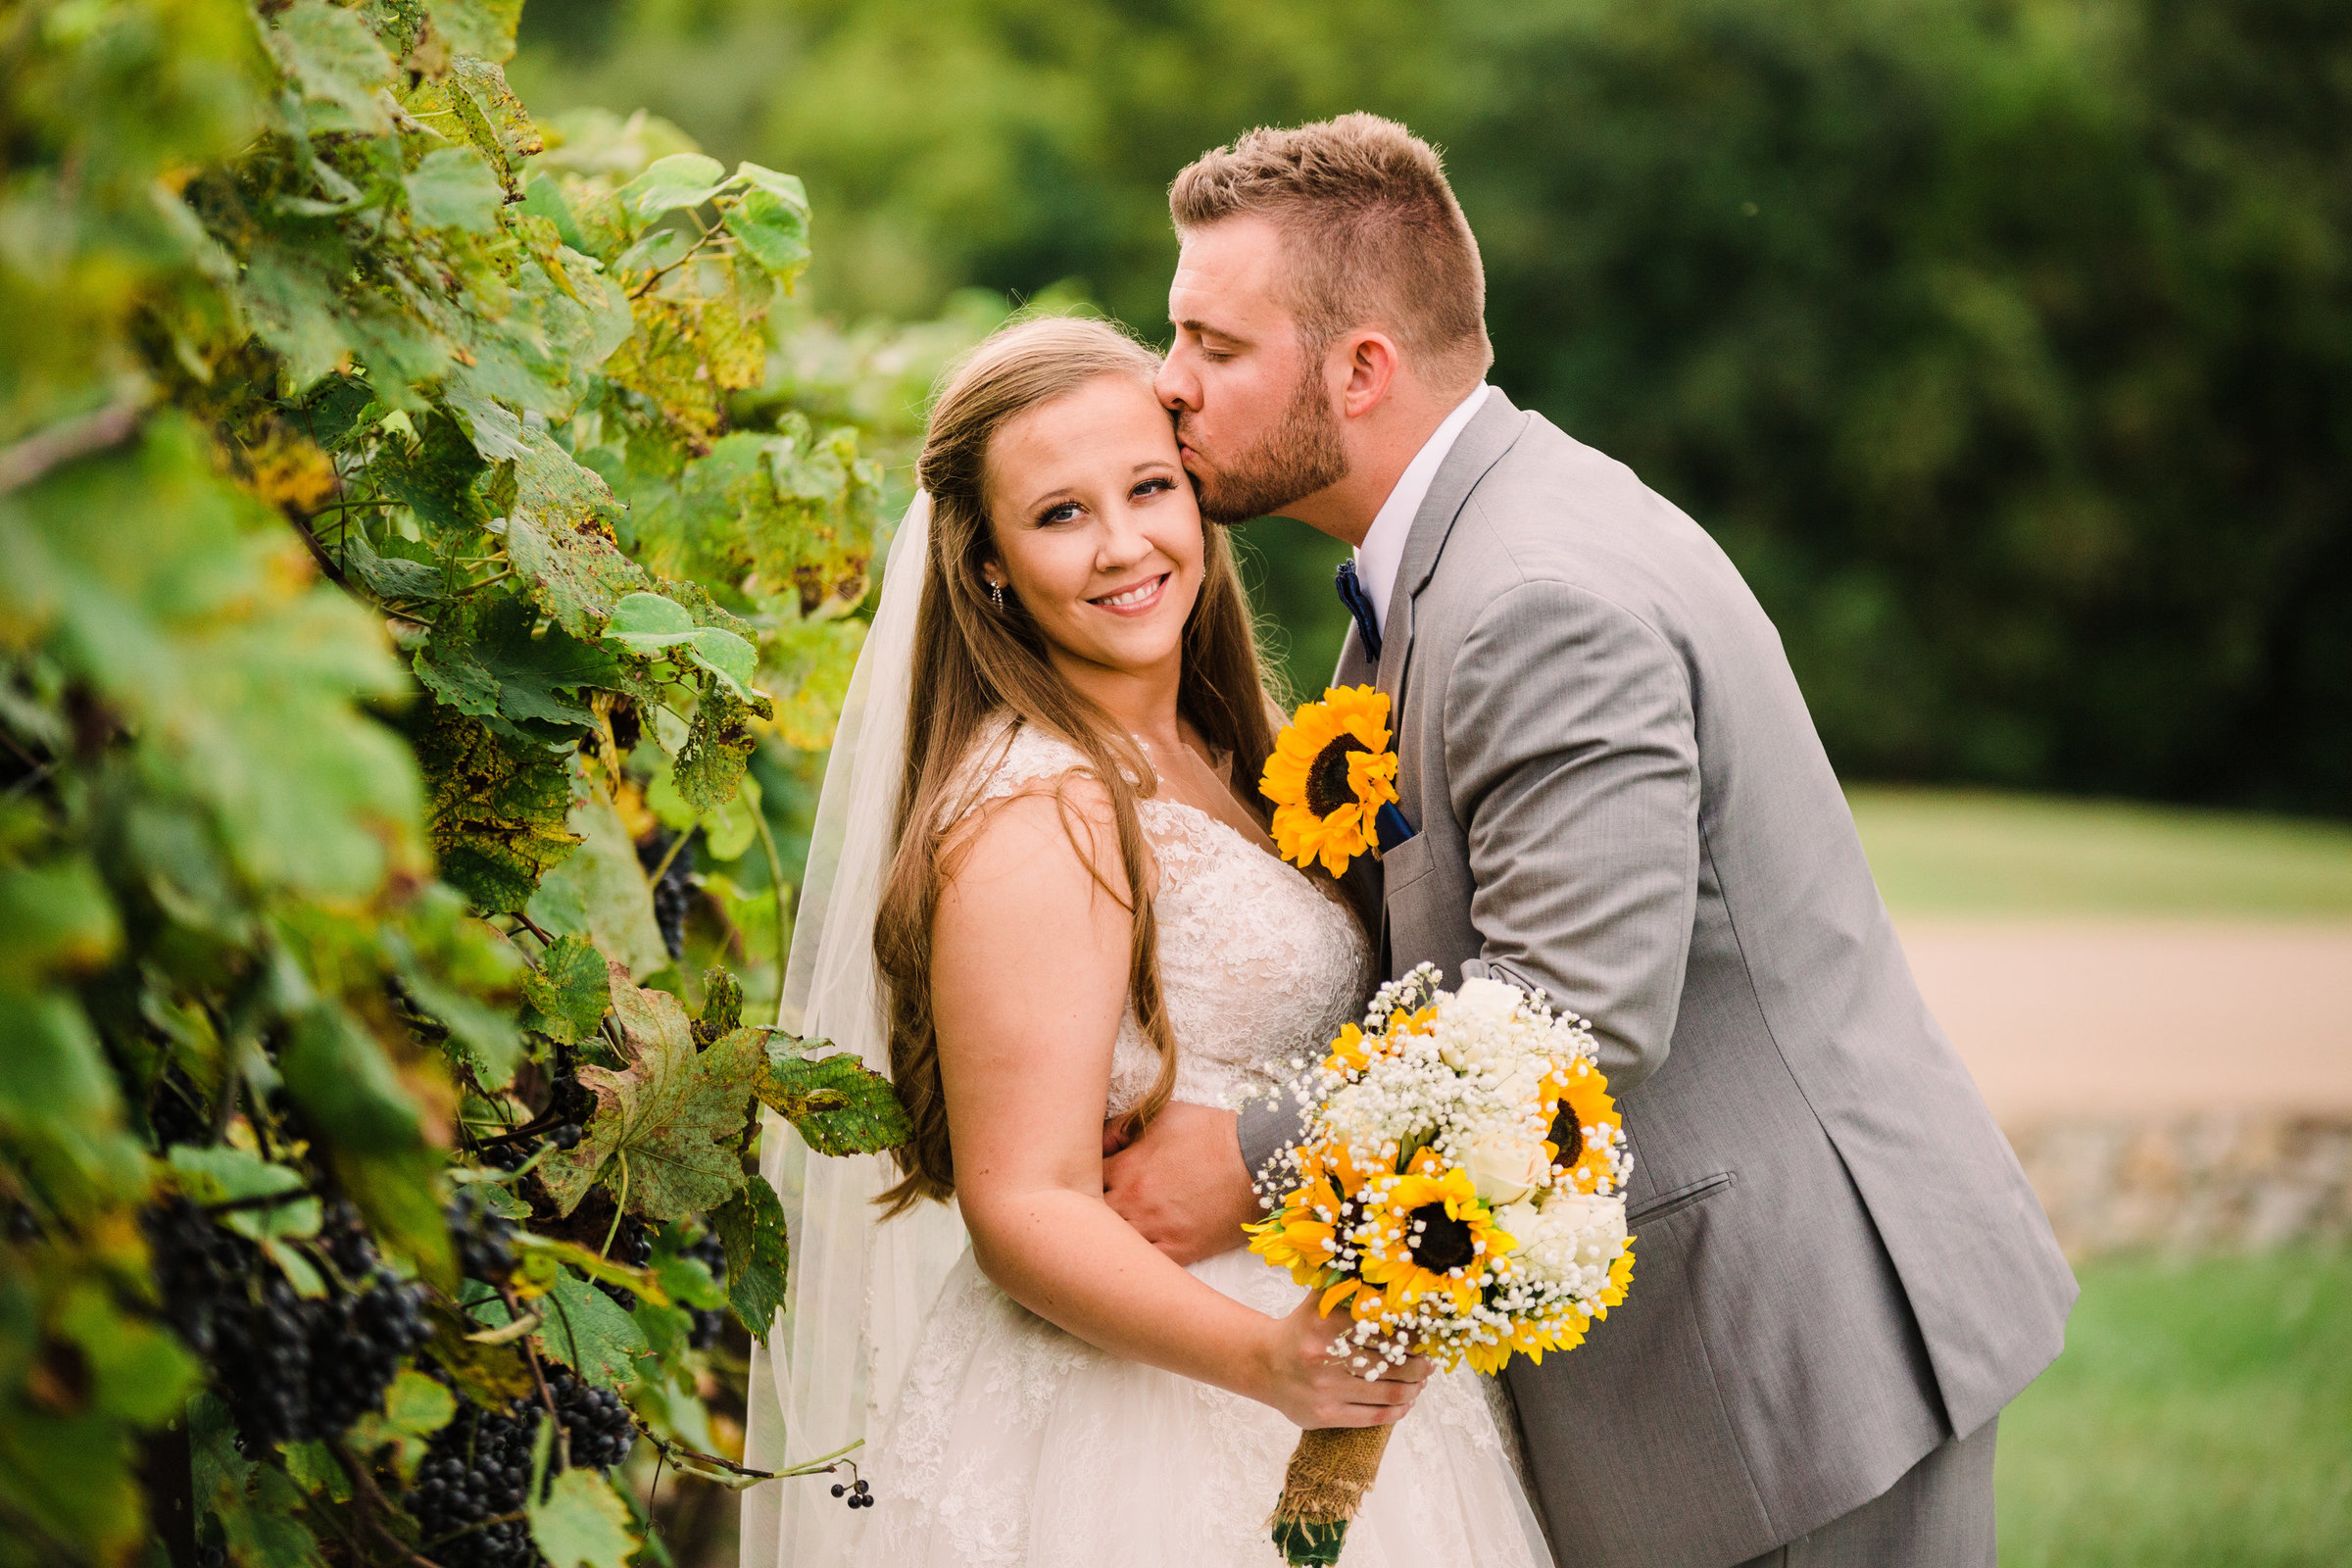 Justus-Wedding-Chaumette-Winery-Jackelynn-Noel-Photography-11